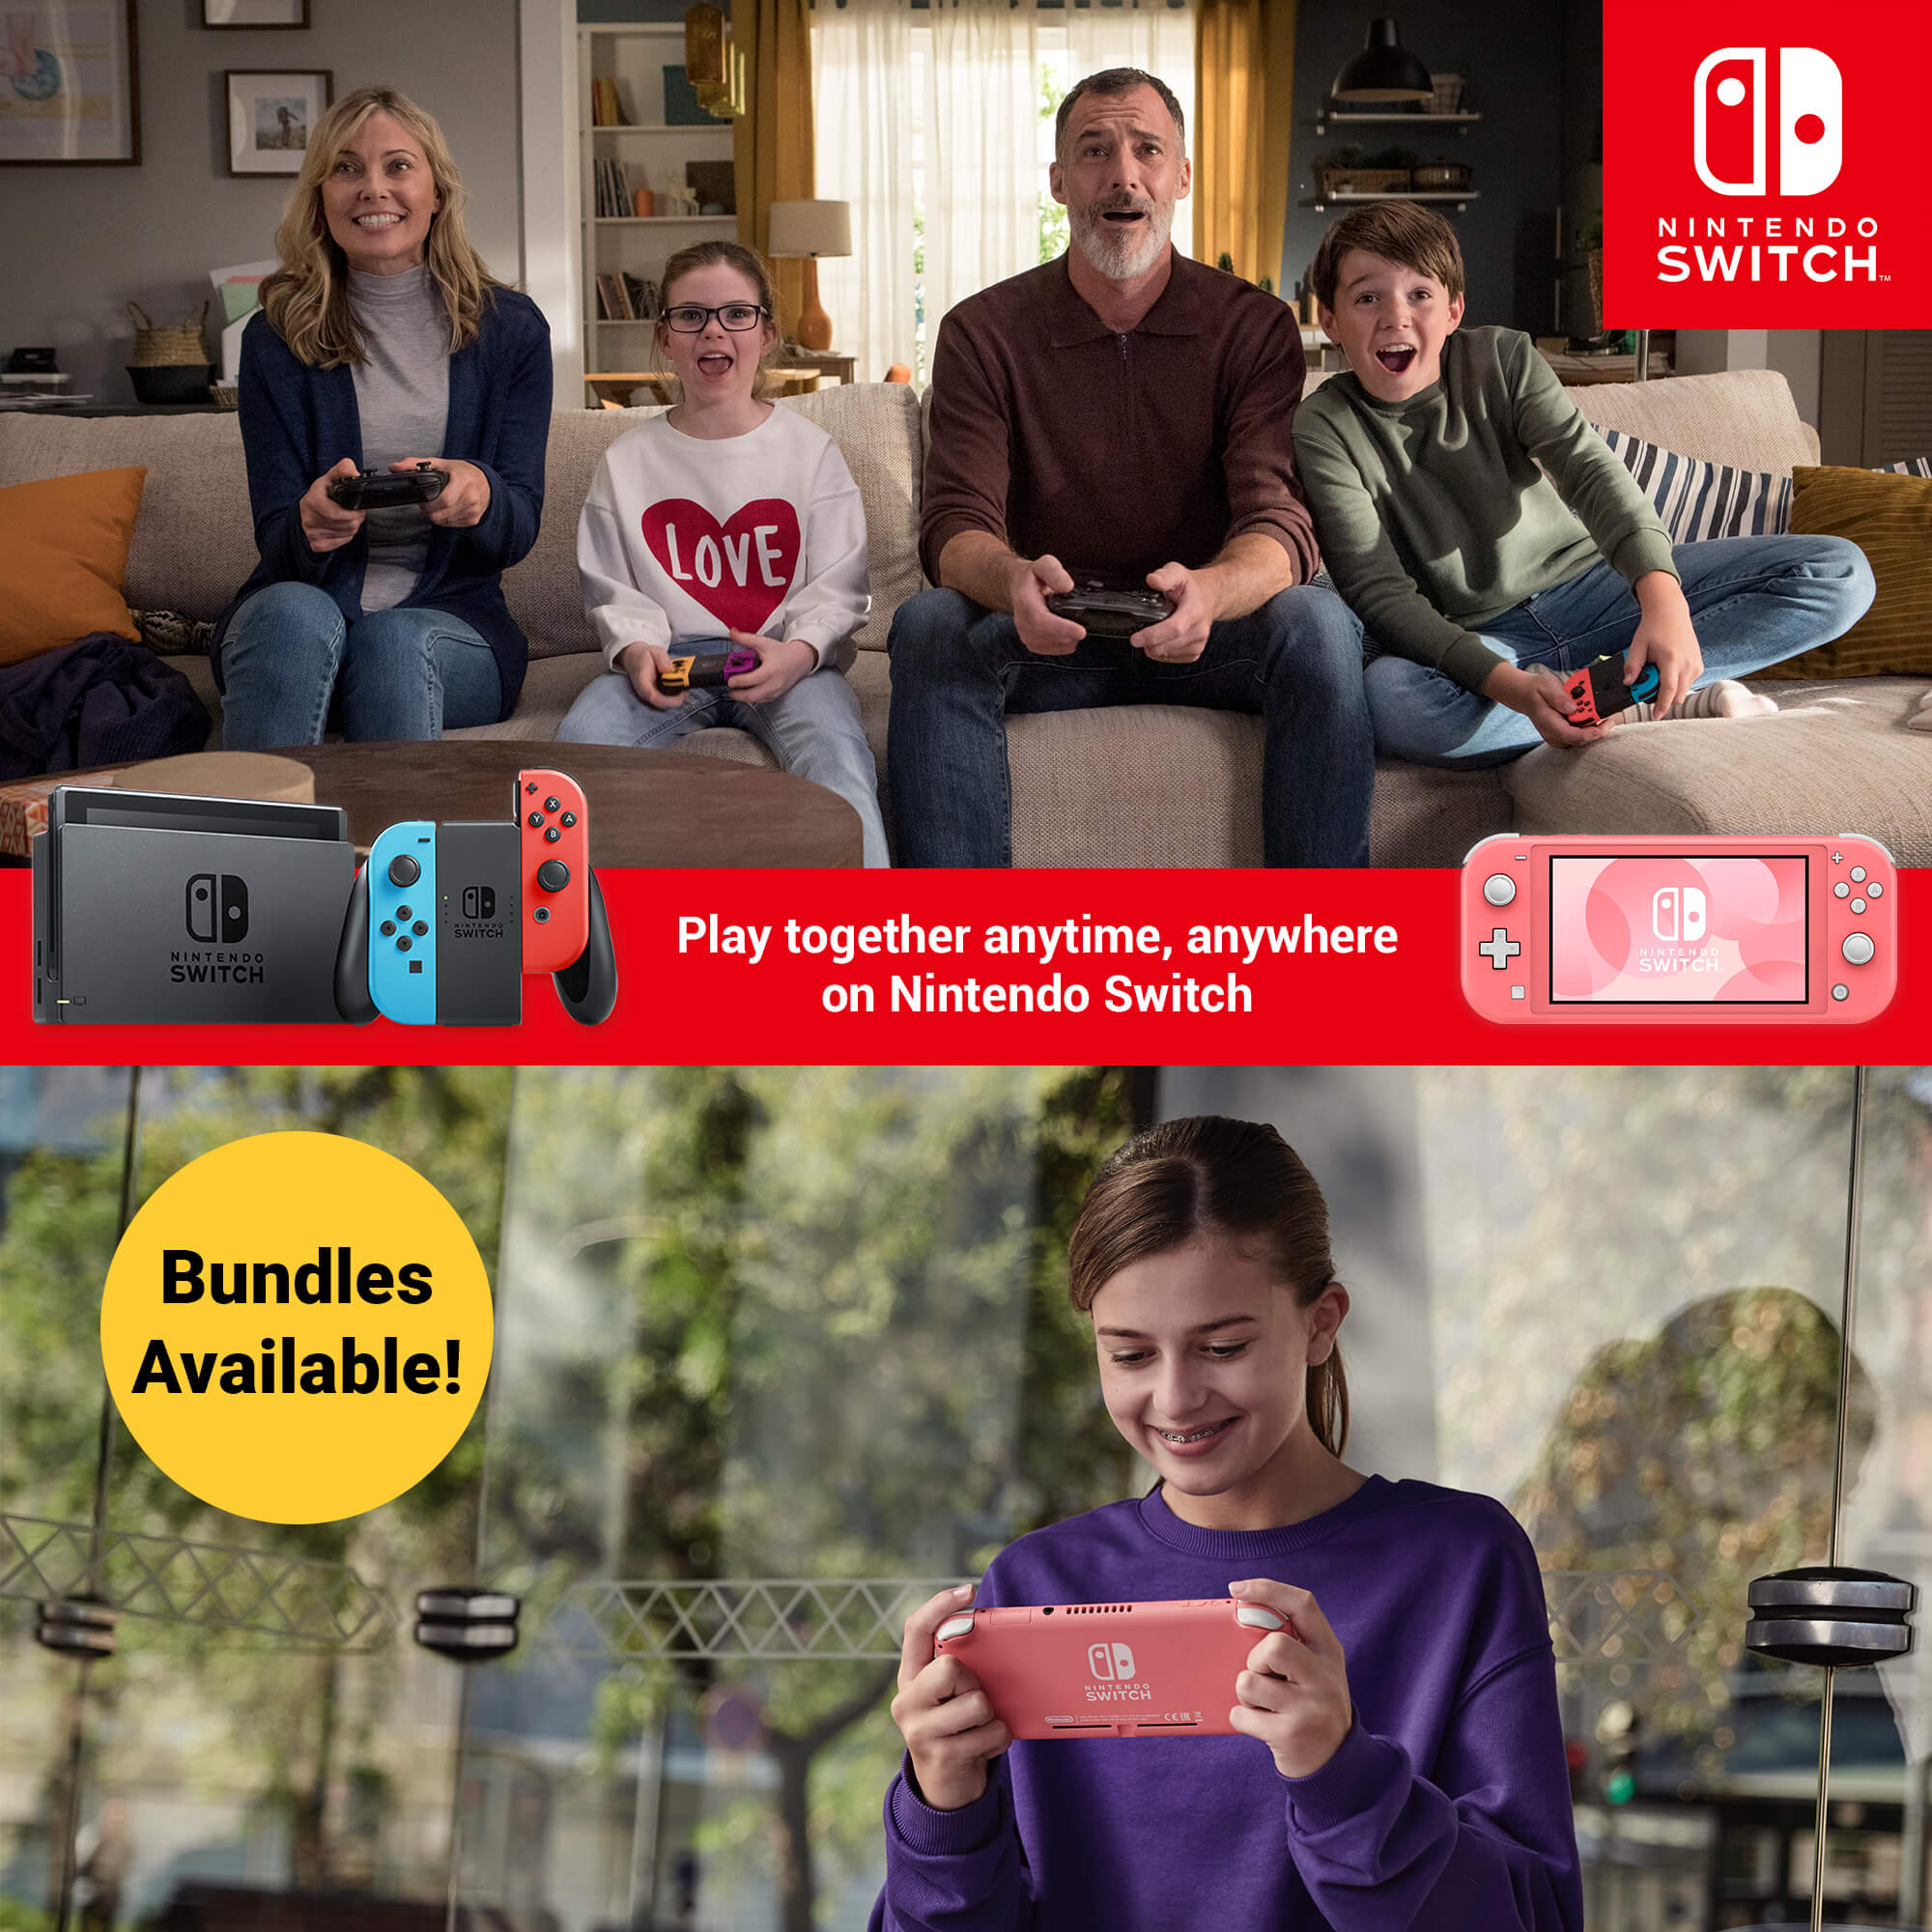 Play anytime, anywhere on Nintendo Switch